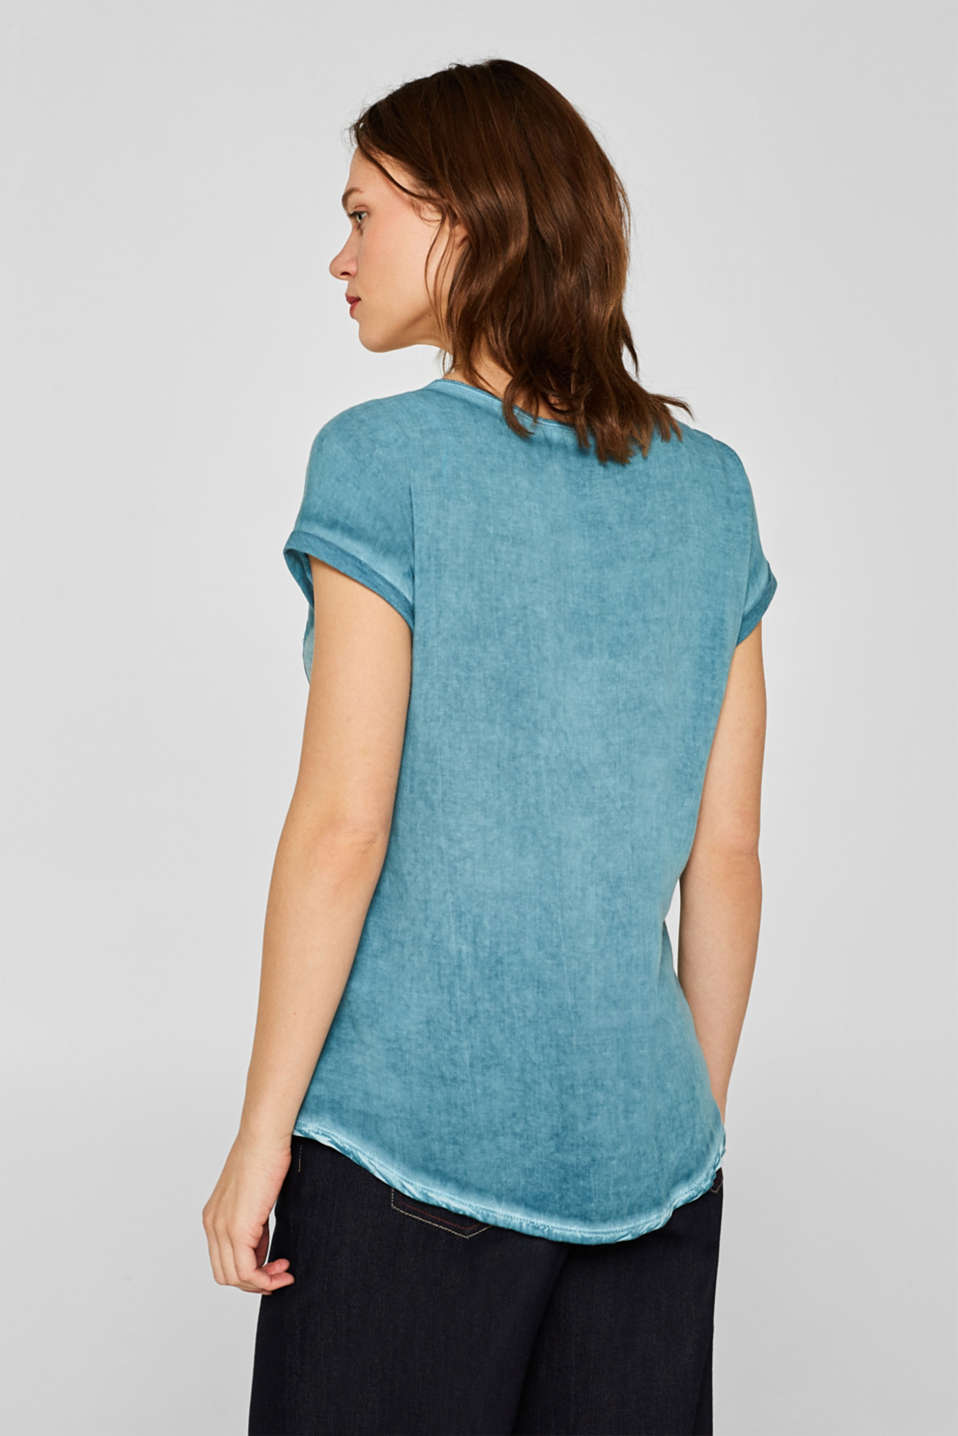 T-shirt in blended fabric with a breast pocket, TEAL BLUE 4, detail image number 3